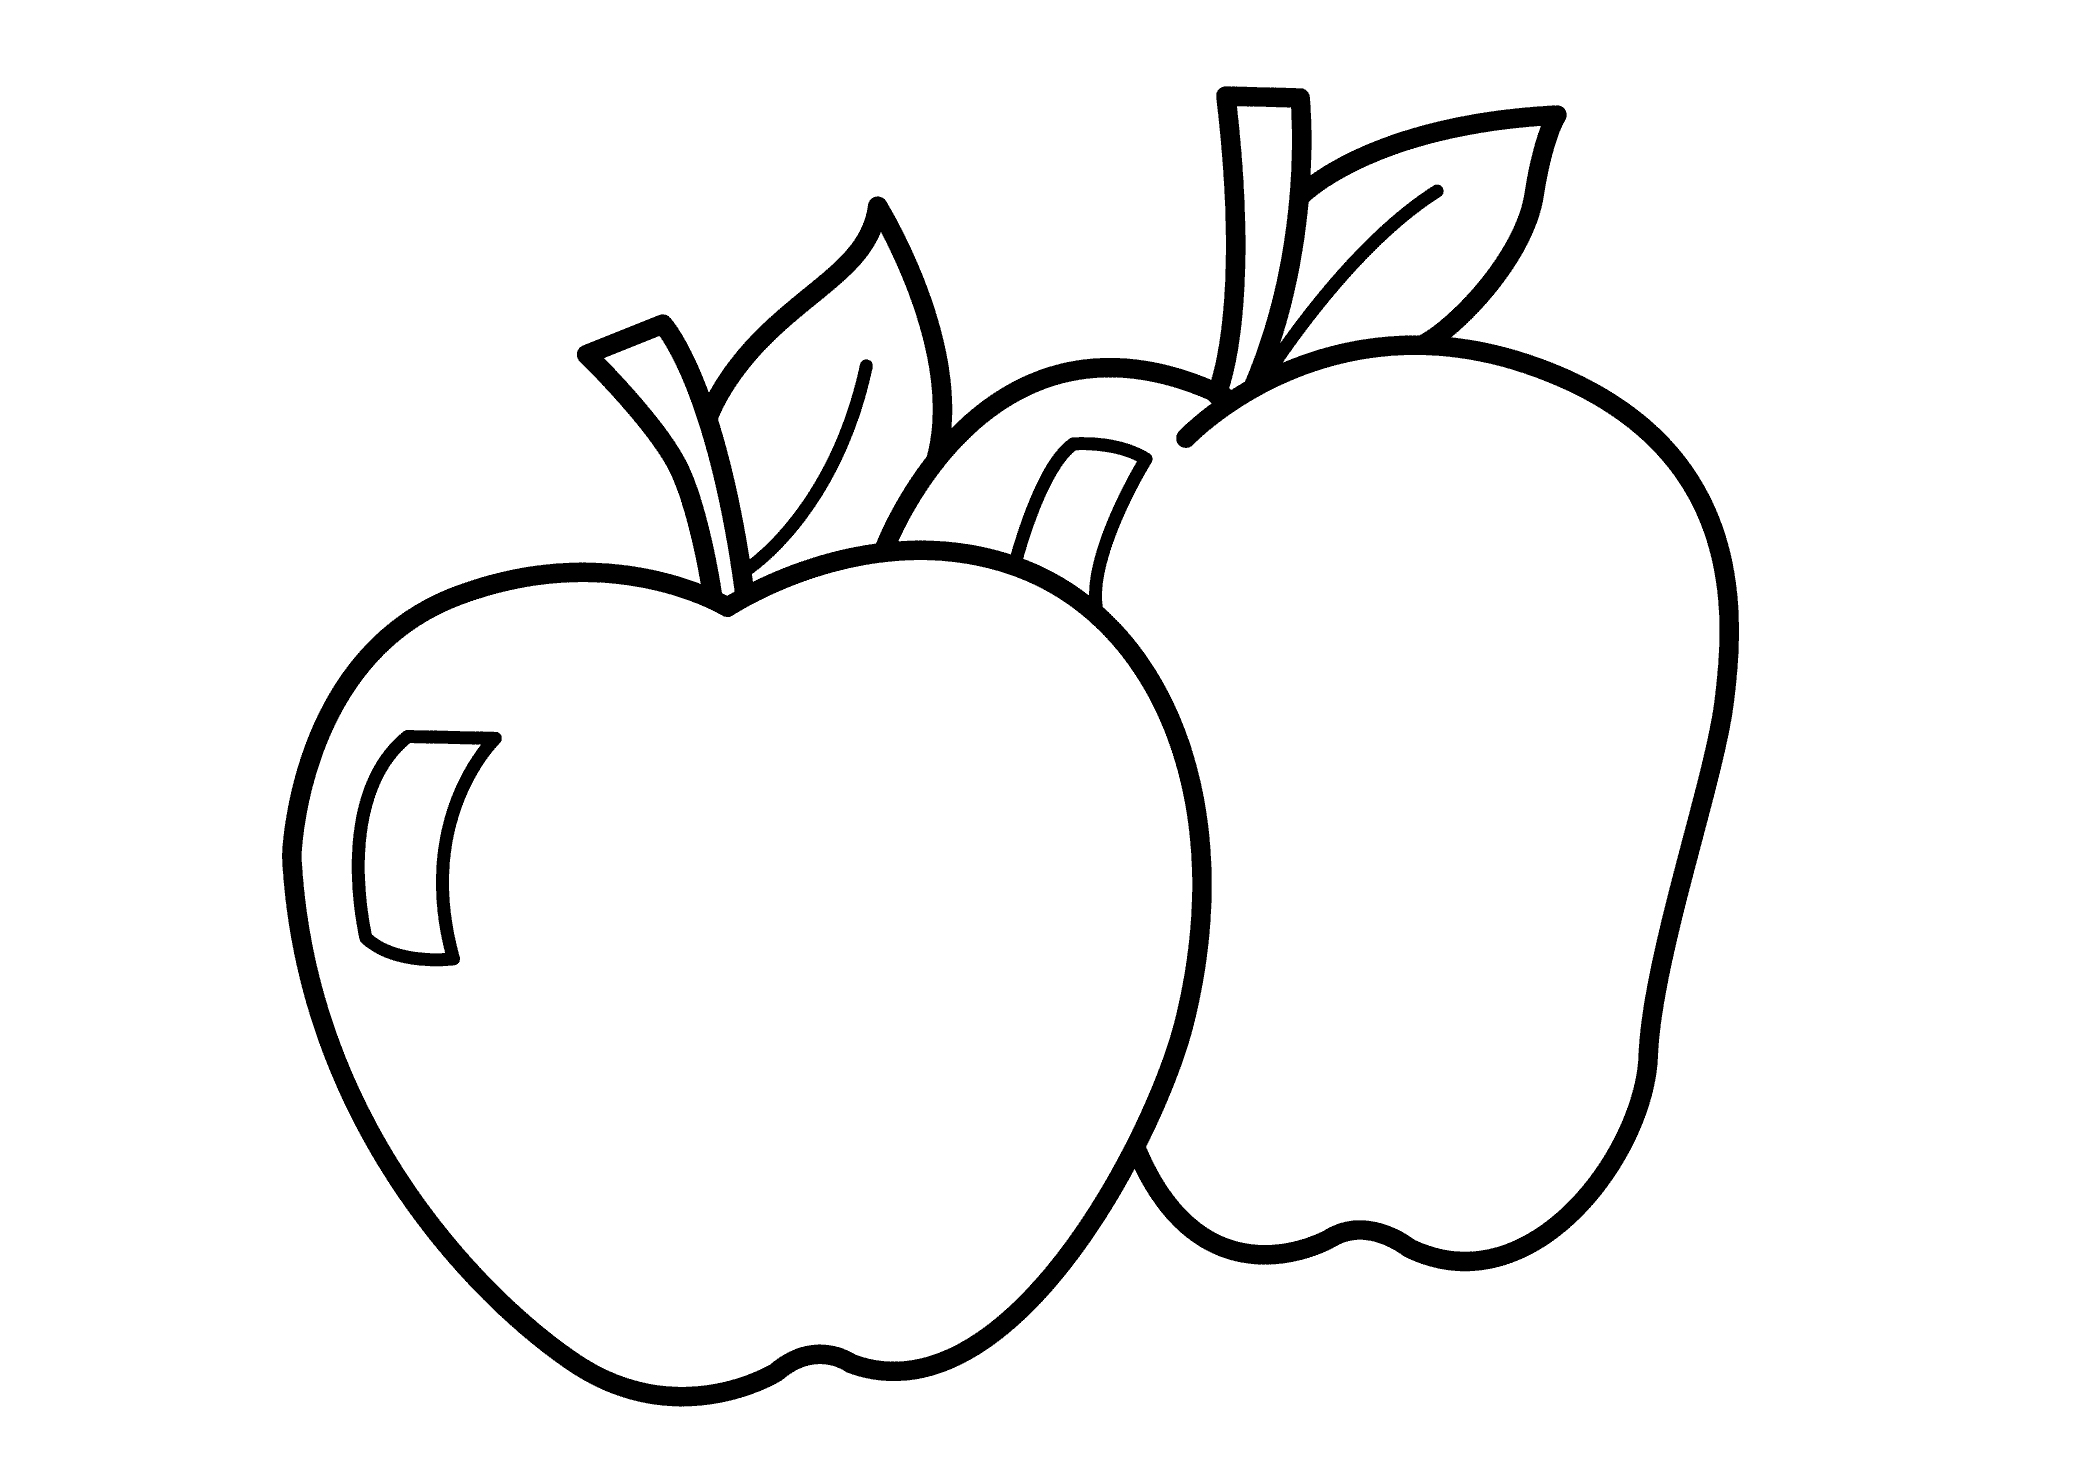 coloring pages apple apple coloring pages to print coloring apple pages 1 1